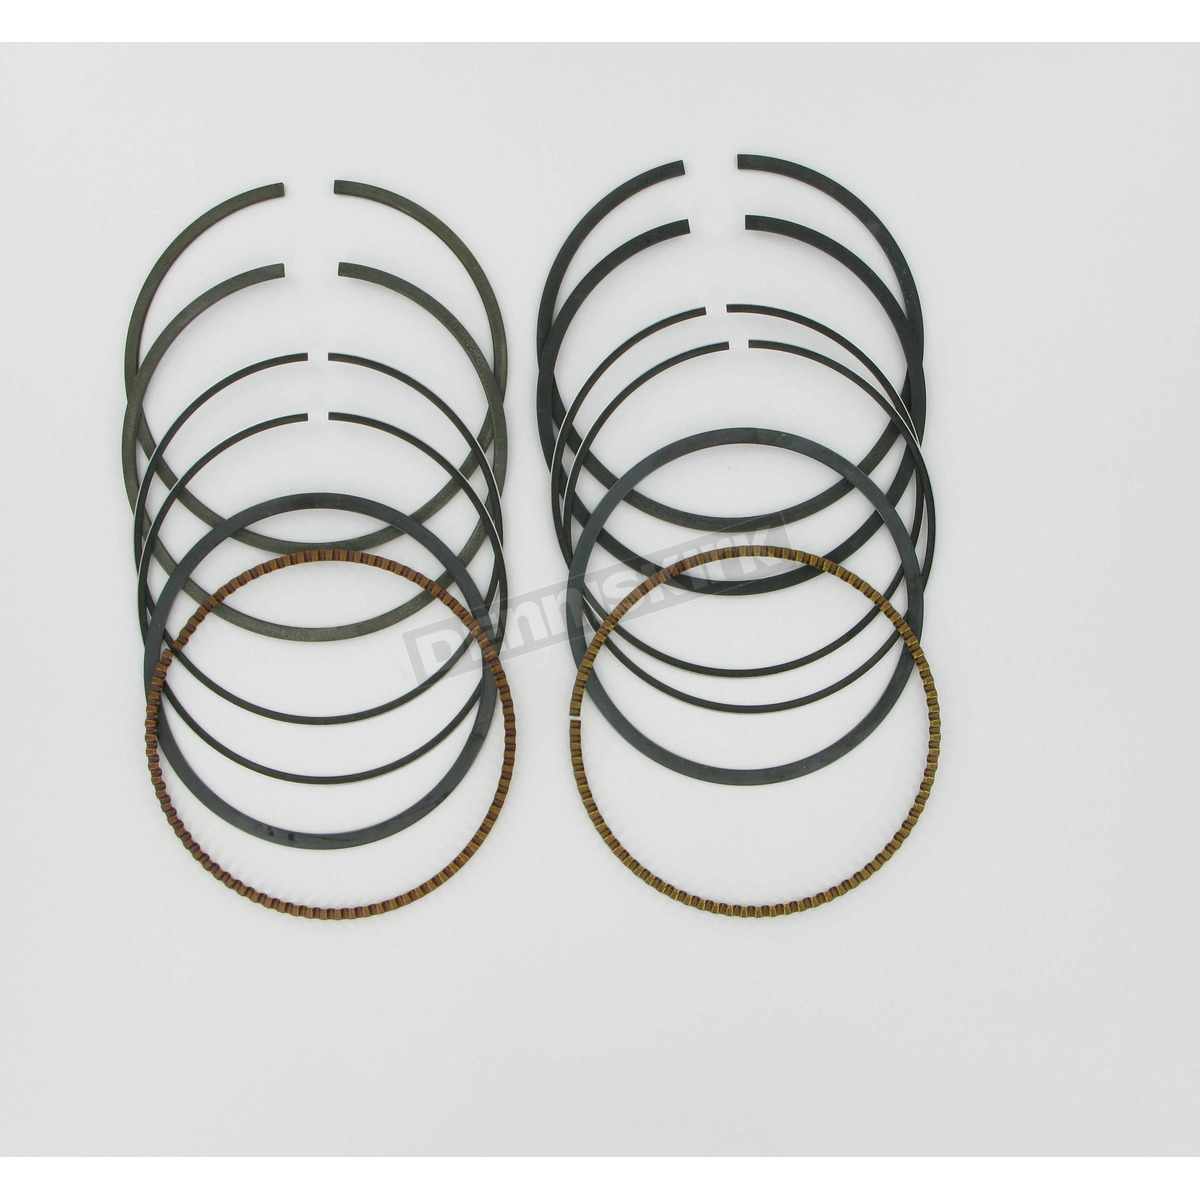 S Amp S Cycle Piston Rings For S Amp S 111 117 124 In Motors